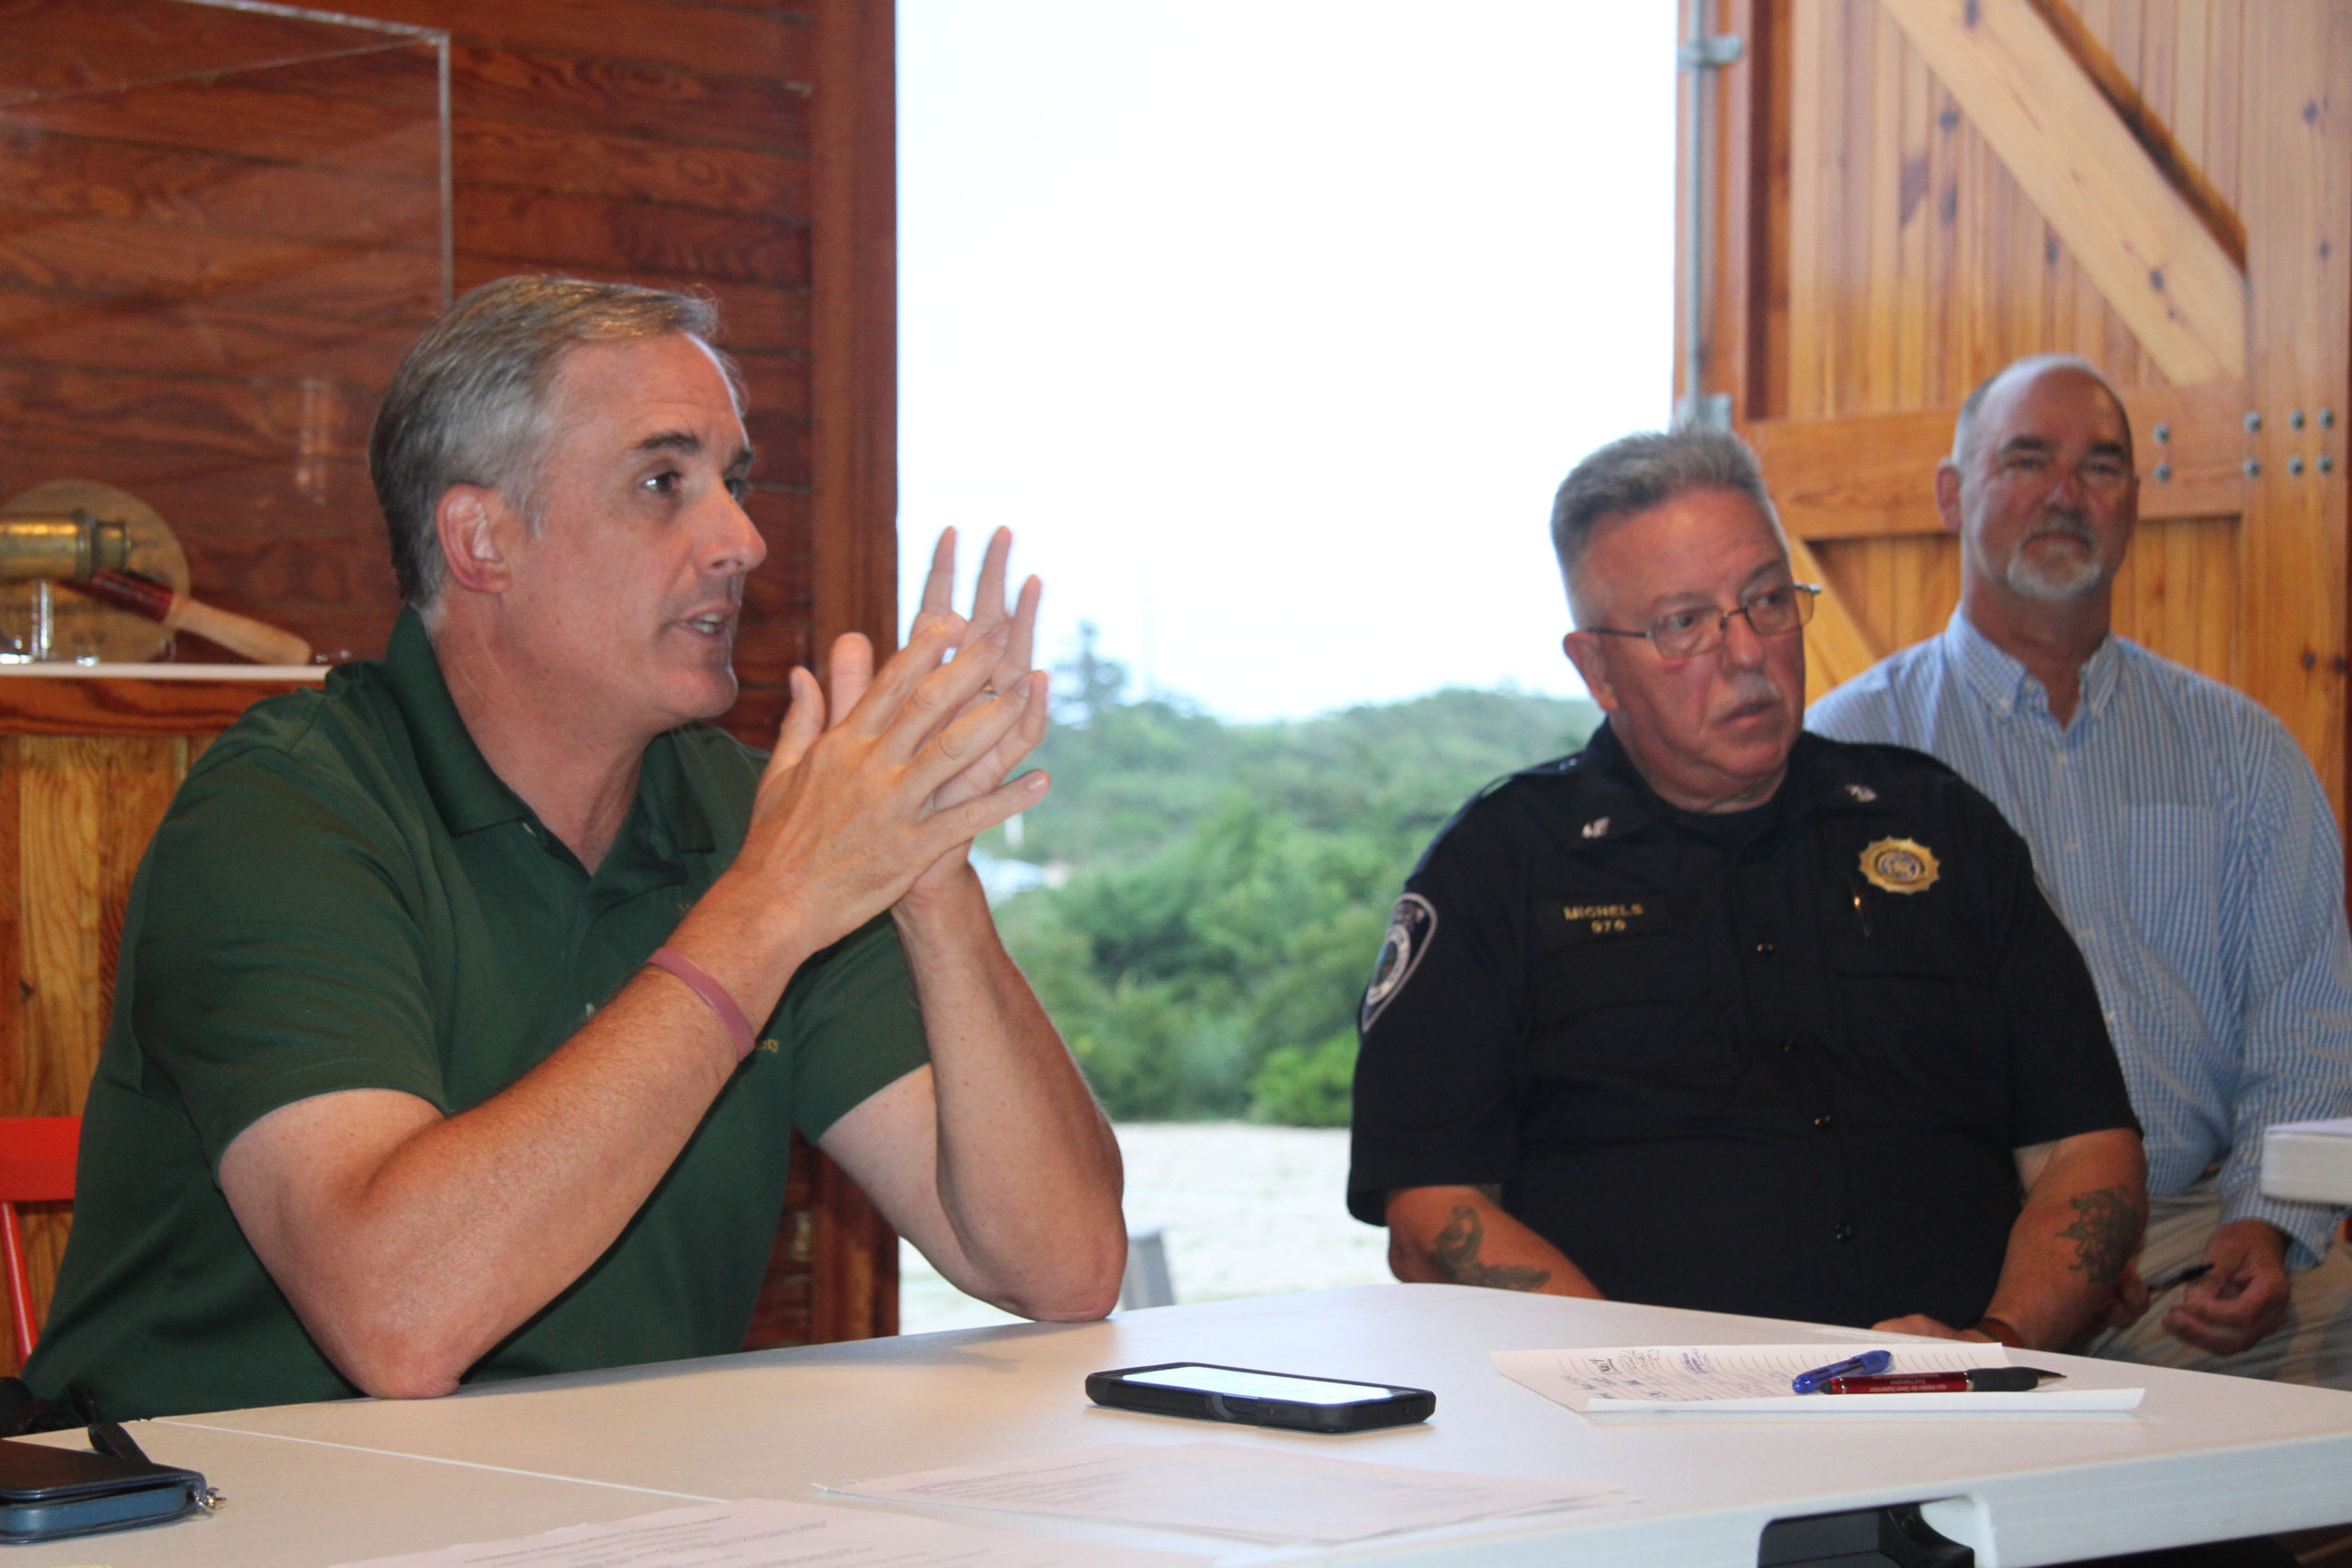 East Hampton Town Police chief Michael Sarlo and Chief Harbormaster Ed Michels.  MICHAEL WRIGHT